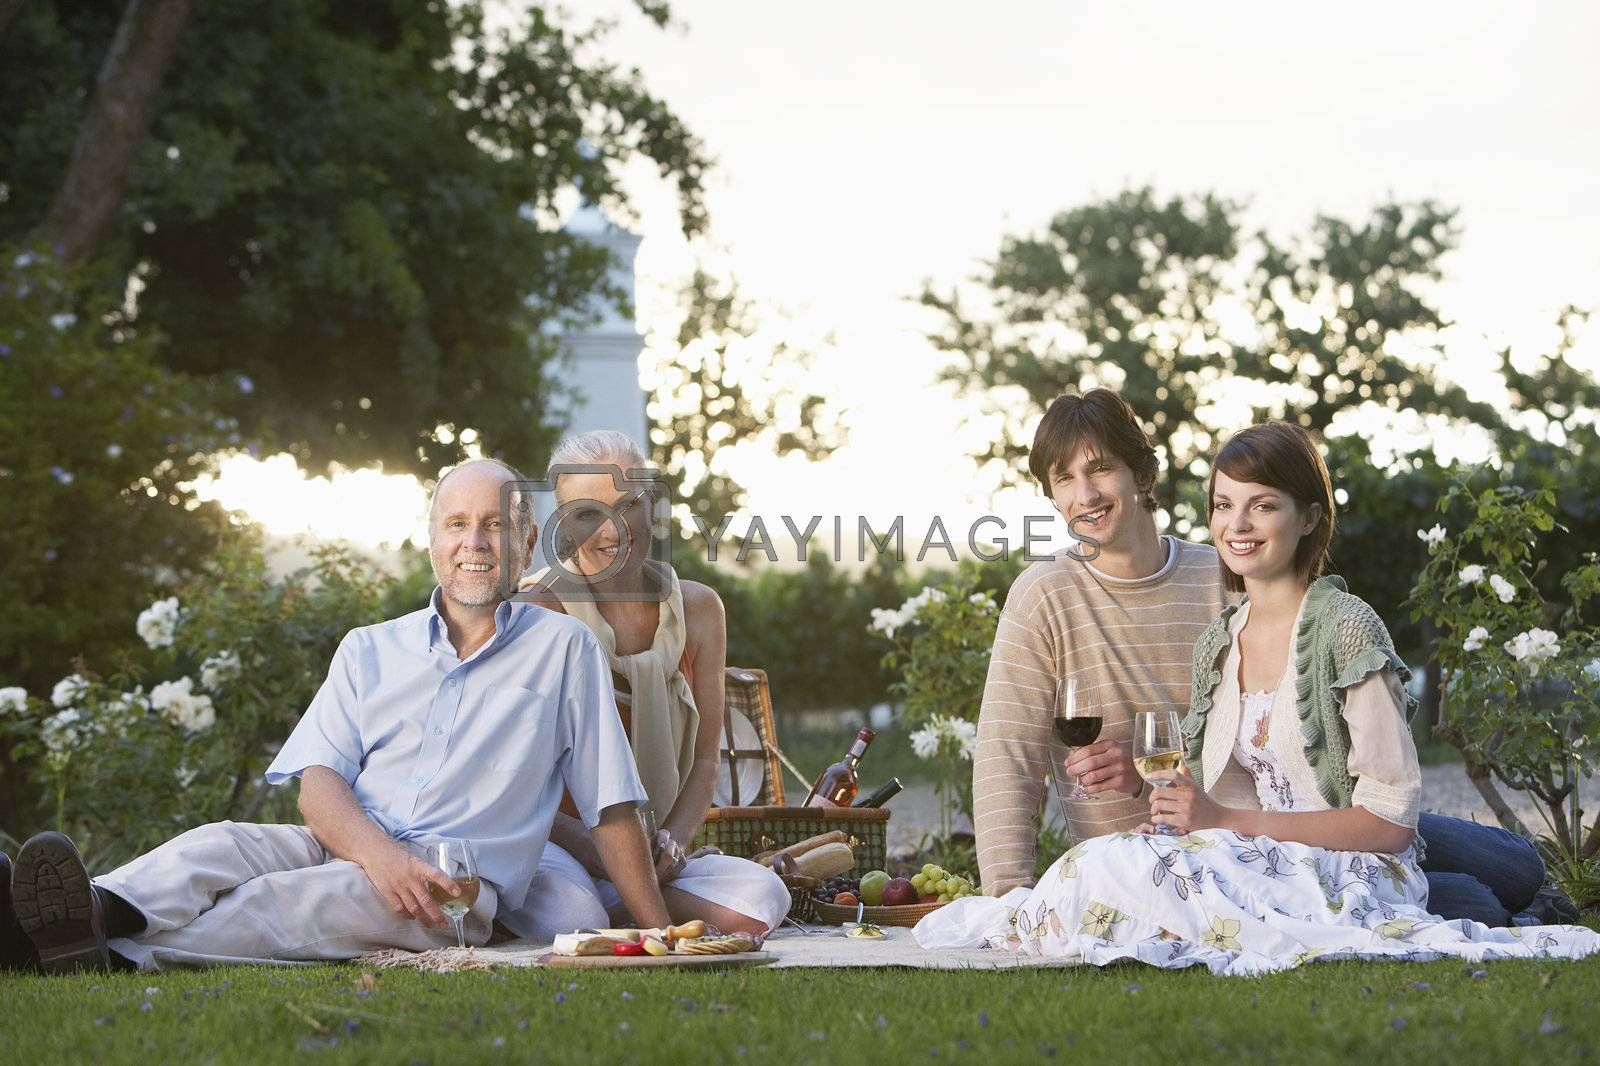 Couples Enjoying an Afternoon at a Winery